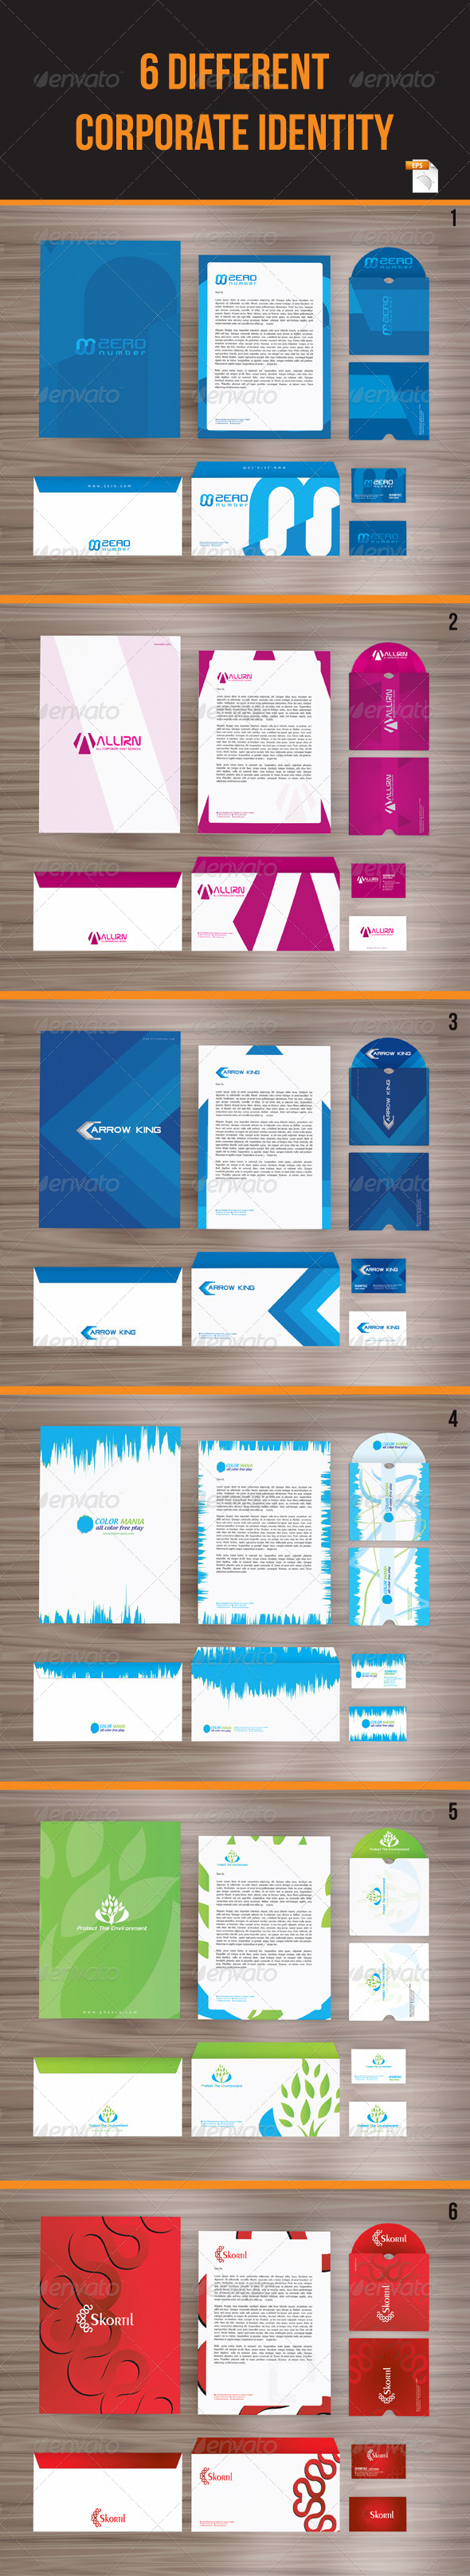 6 in 1 Packages Corporate Identity - Stationery Print Templates